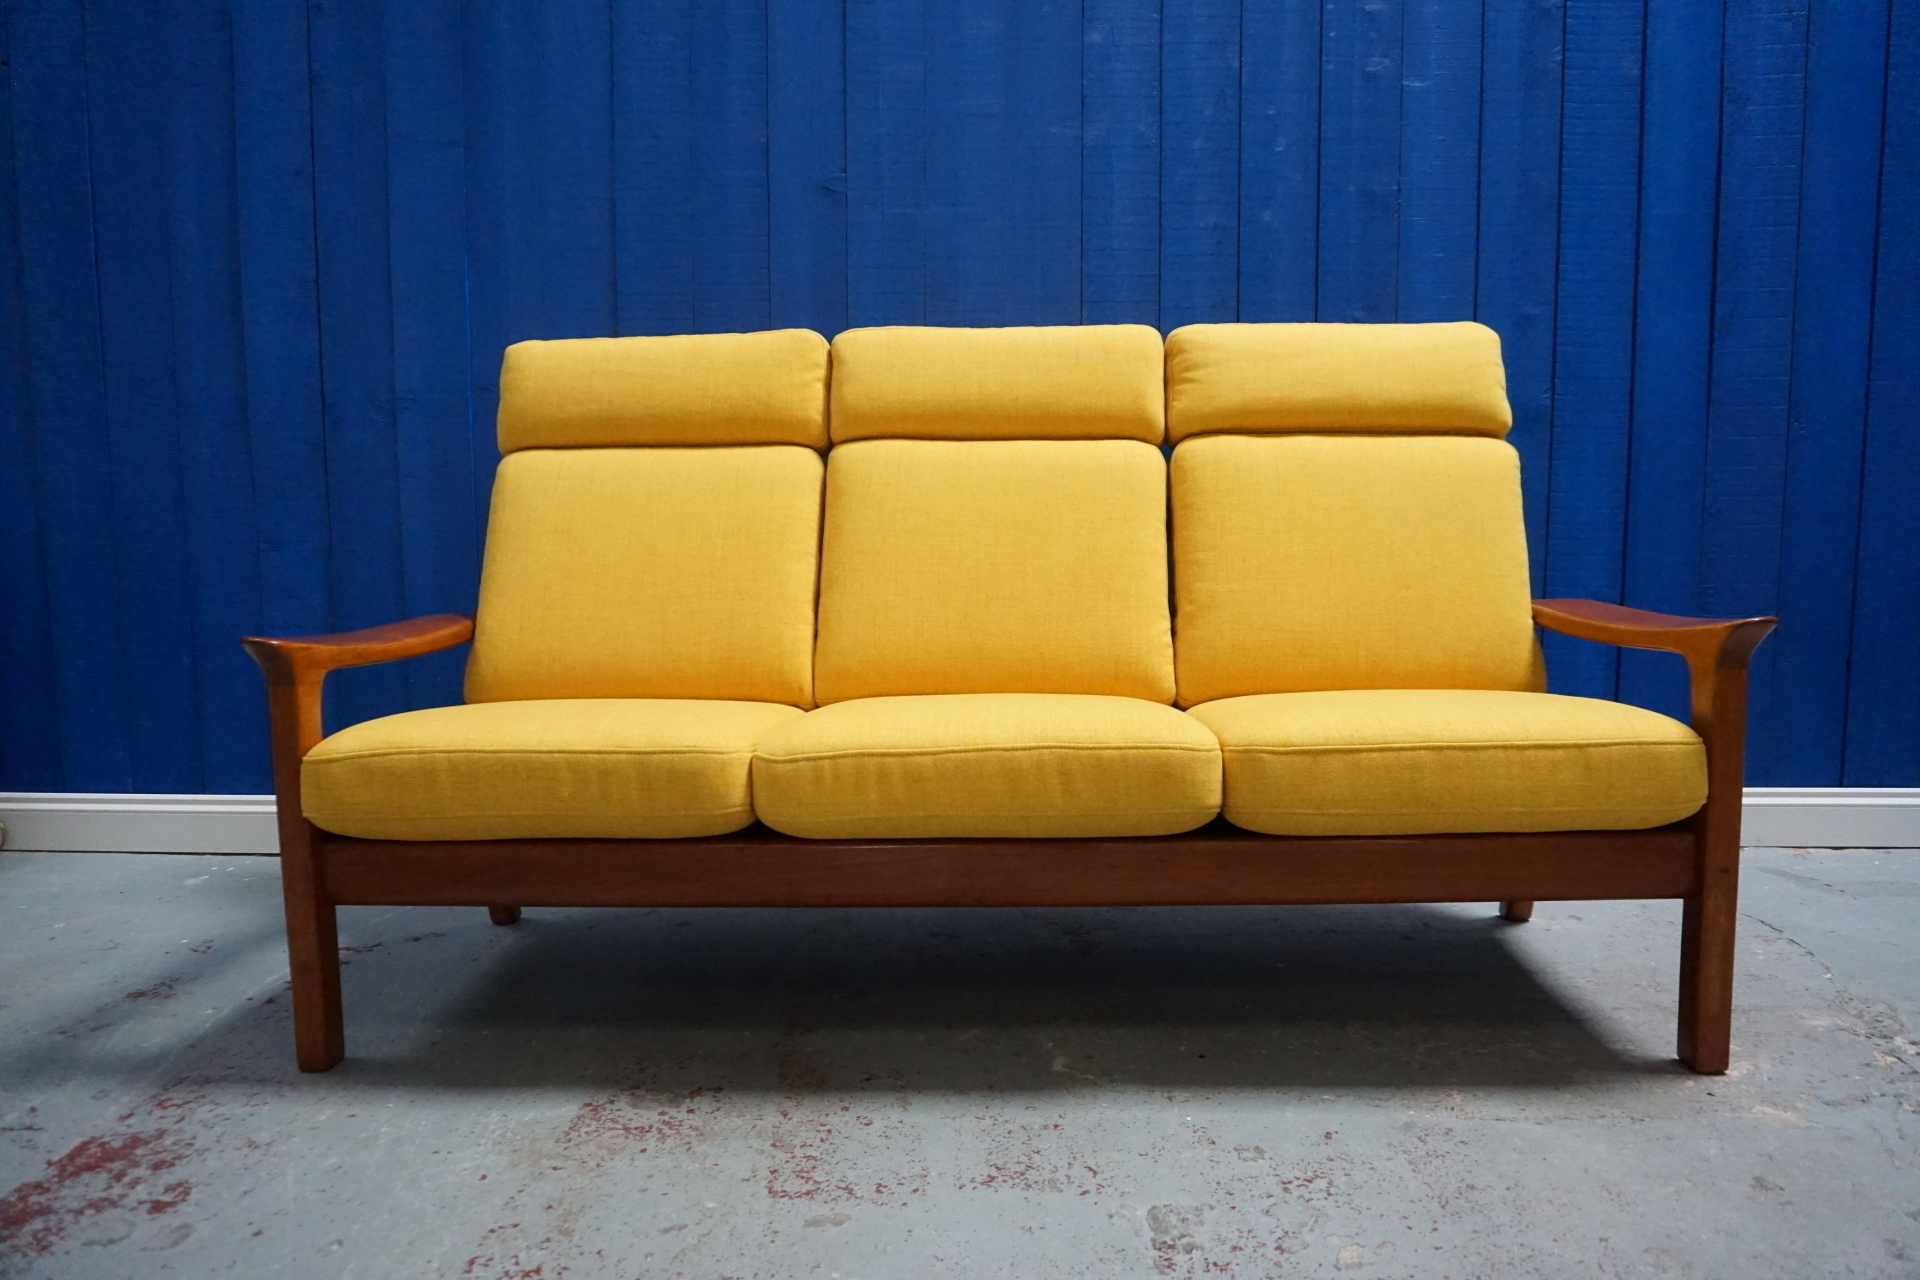 Three Seat Teak Wood Sofa In Yellow By Juul Kristensen And Glostrup